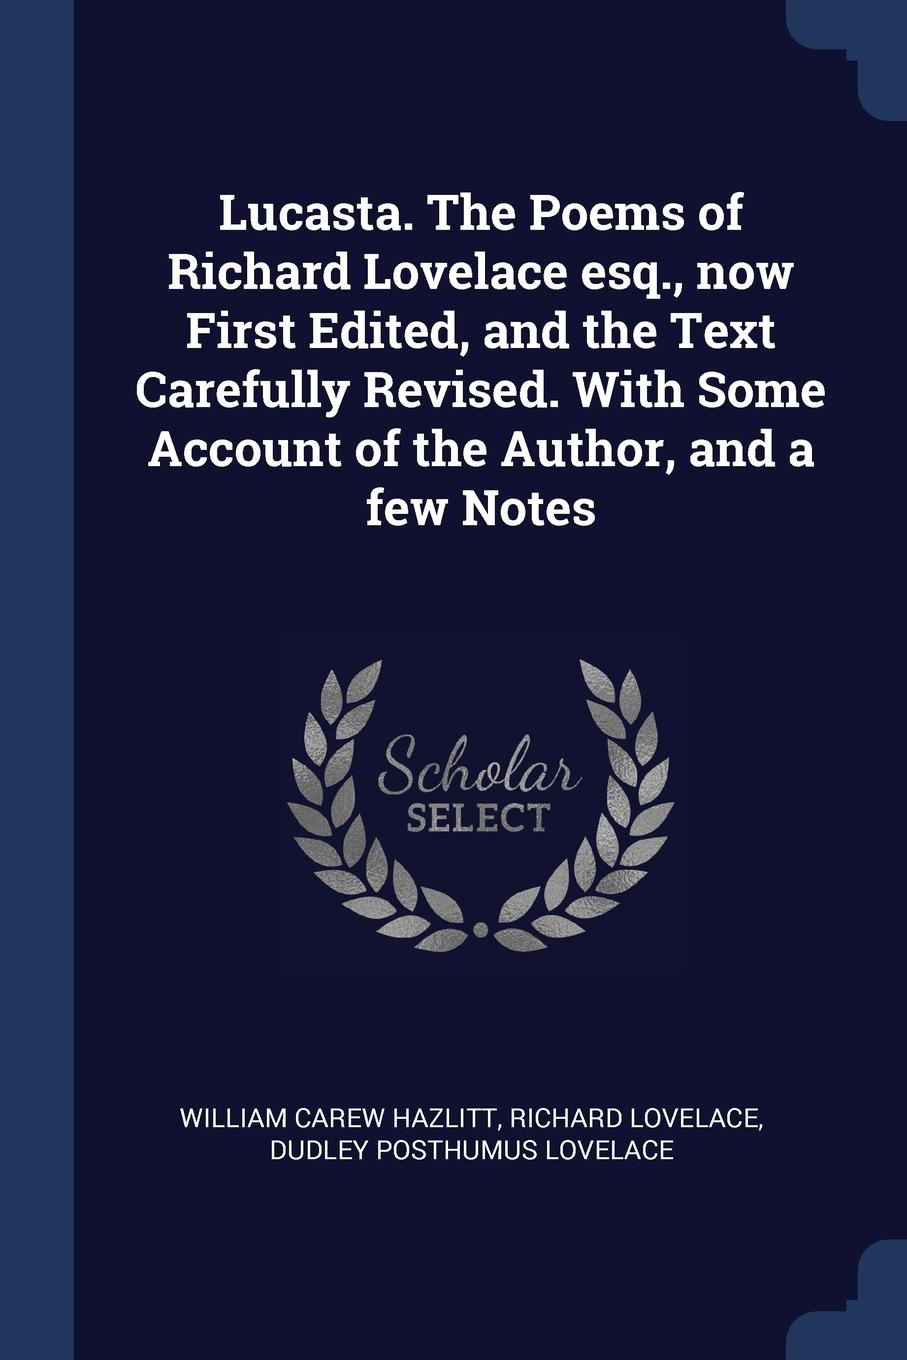 Lucasta. The Poems of Richard Lovelace esq., now First Edited, and the Text Carefully Revised. With Some Account of the Author, and a few Notes. William Carew Hazlitt, Richard Lovelace, Dudley Posthumus Lovelace